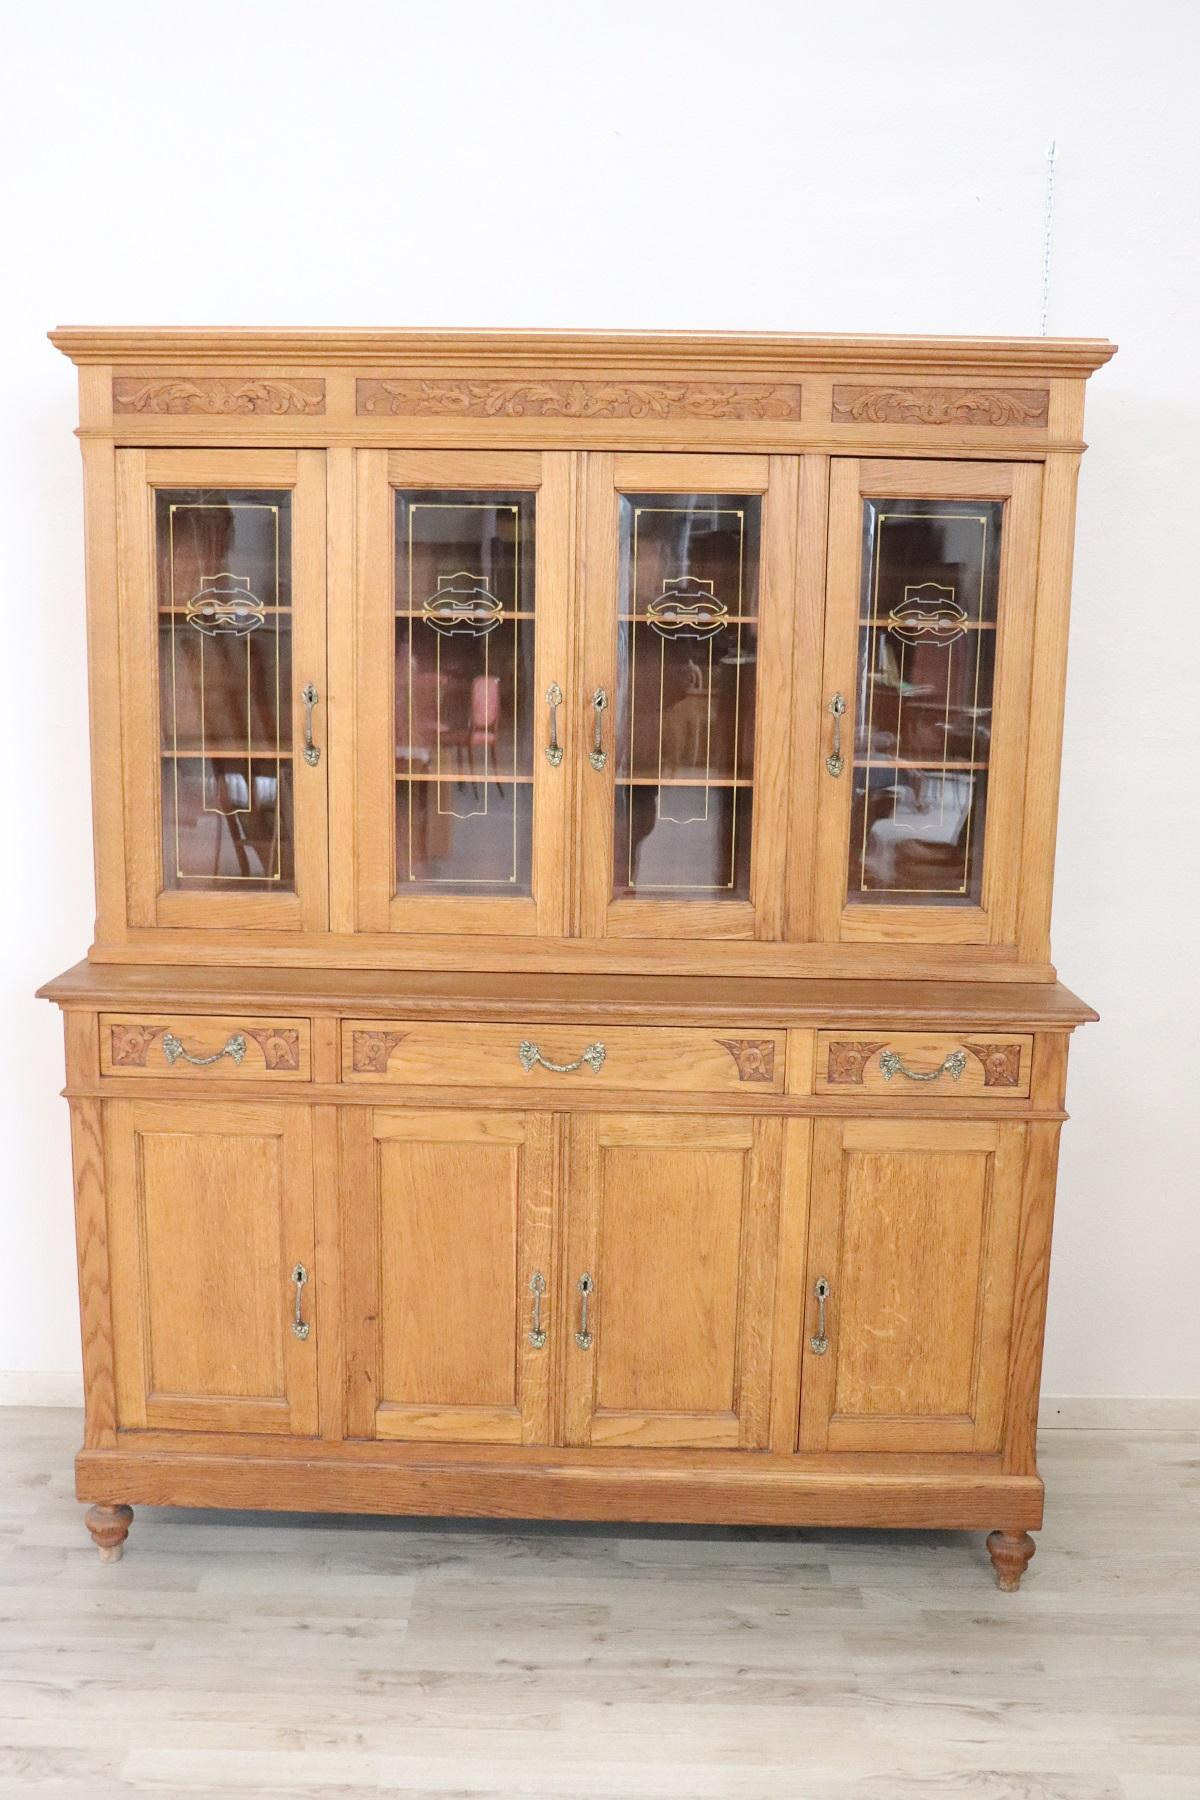 Sideboard Vitrine 20th Century Italian Art Nouveau Solid Chestnut Wood Dining Room Set 8 Pieces